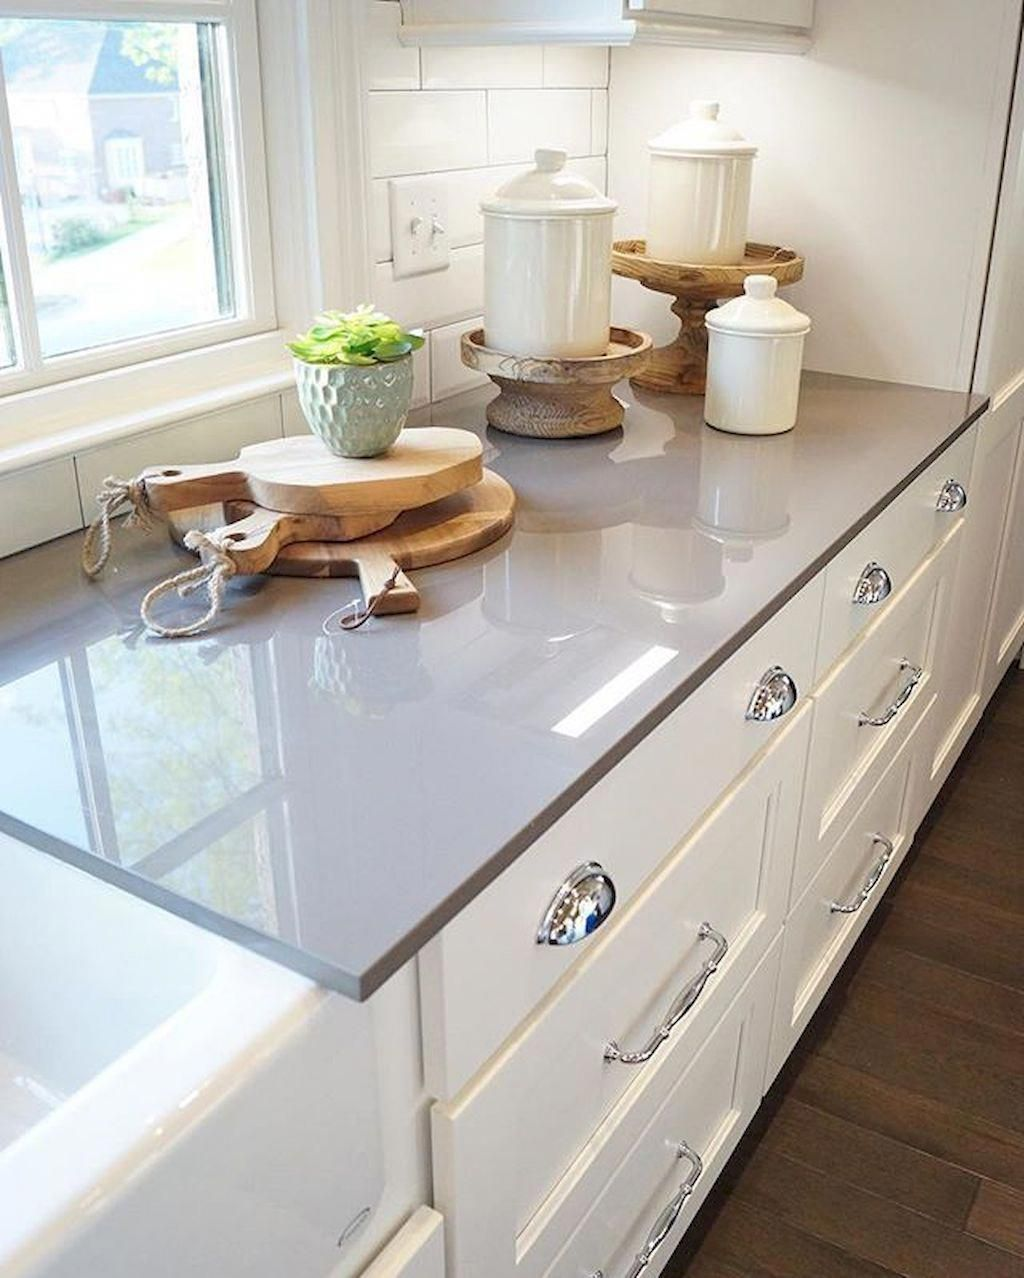 Mentioning Kitchen Sinks There Is A Likelihood That You If You Are Dissatisfied With Your Kitchen You May Wish To Buy And Have A Brand N Kitchen Cabinet Design